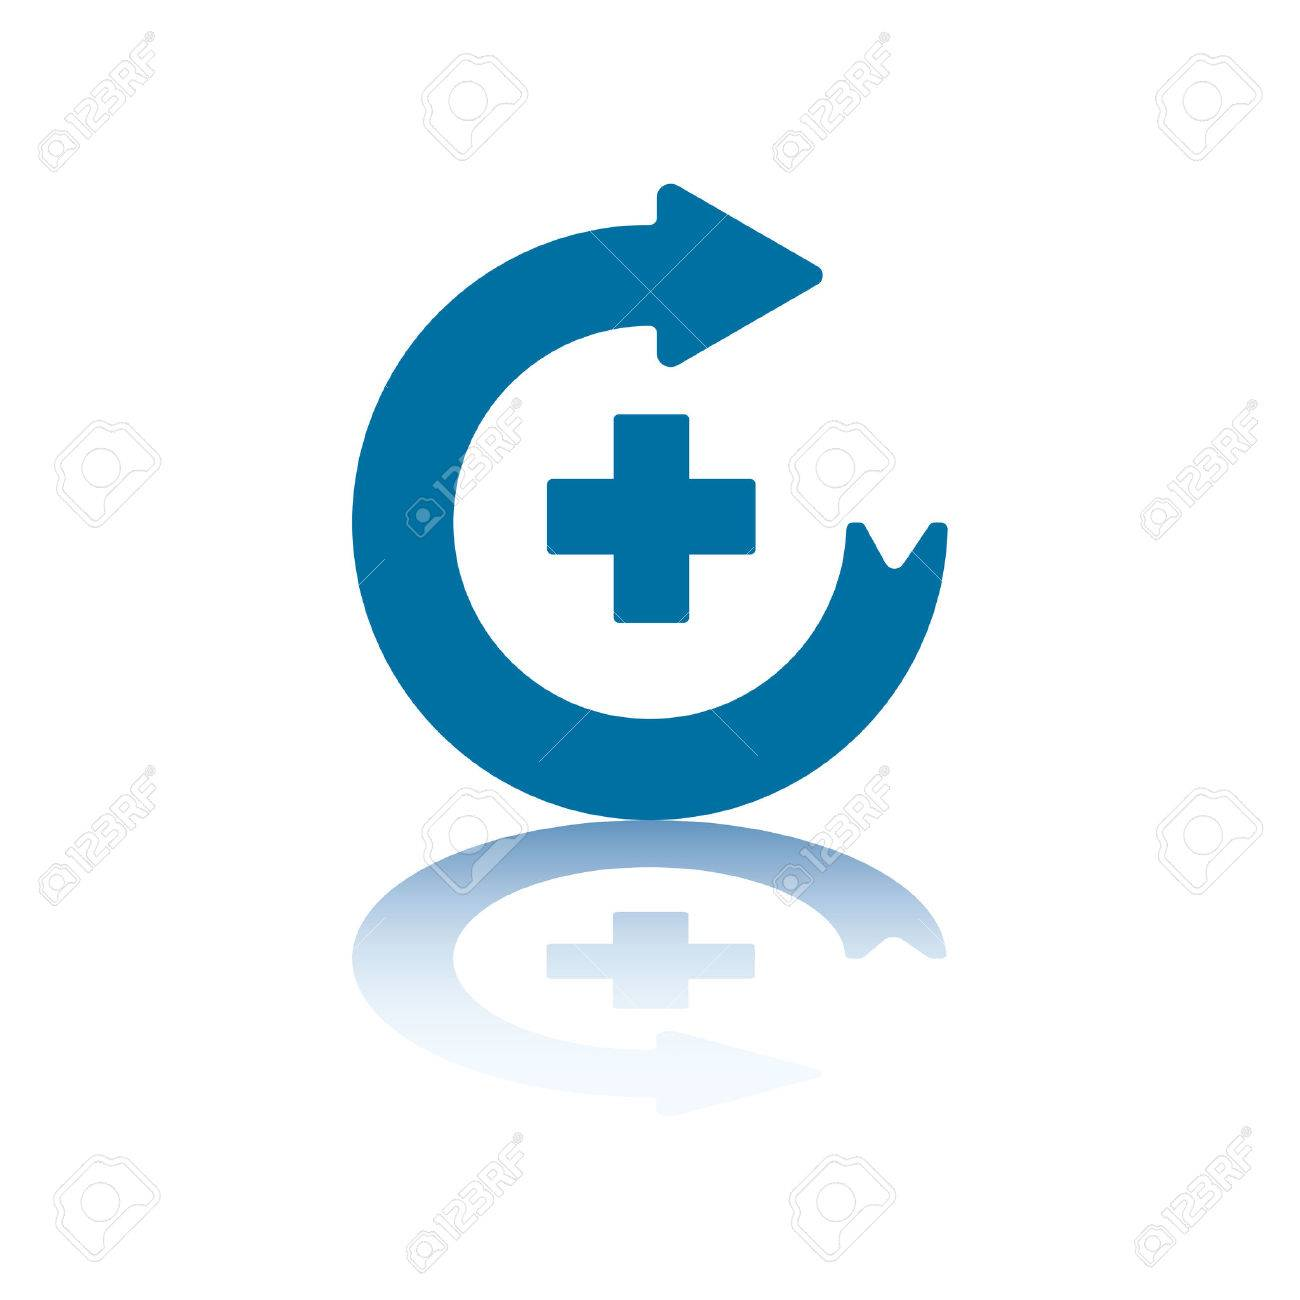 Circular Arrow Pointing Right With Plus Sign in its Center Stock Vector - 3455918